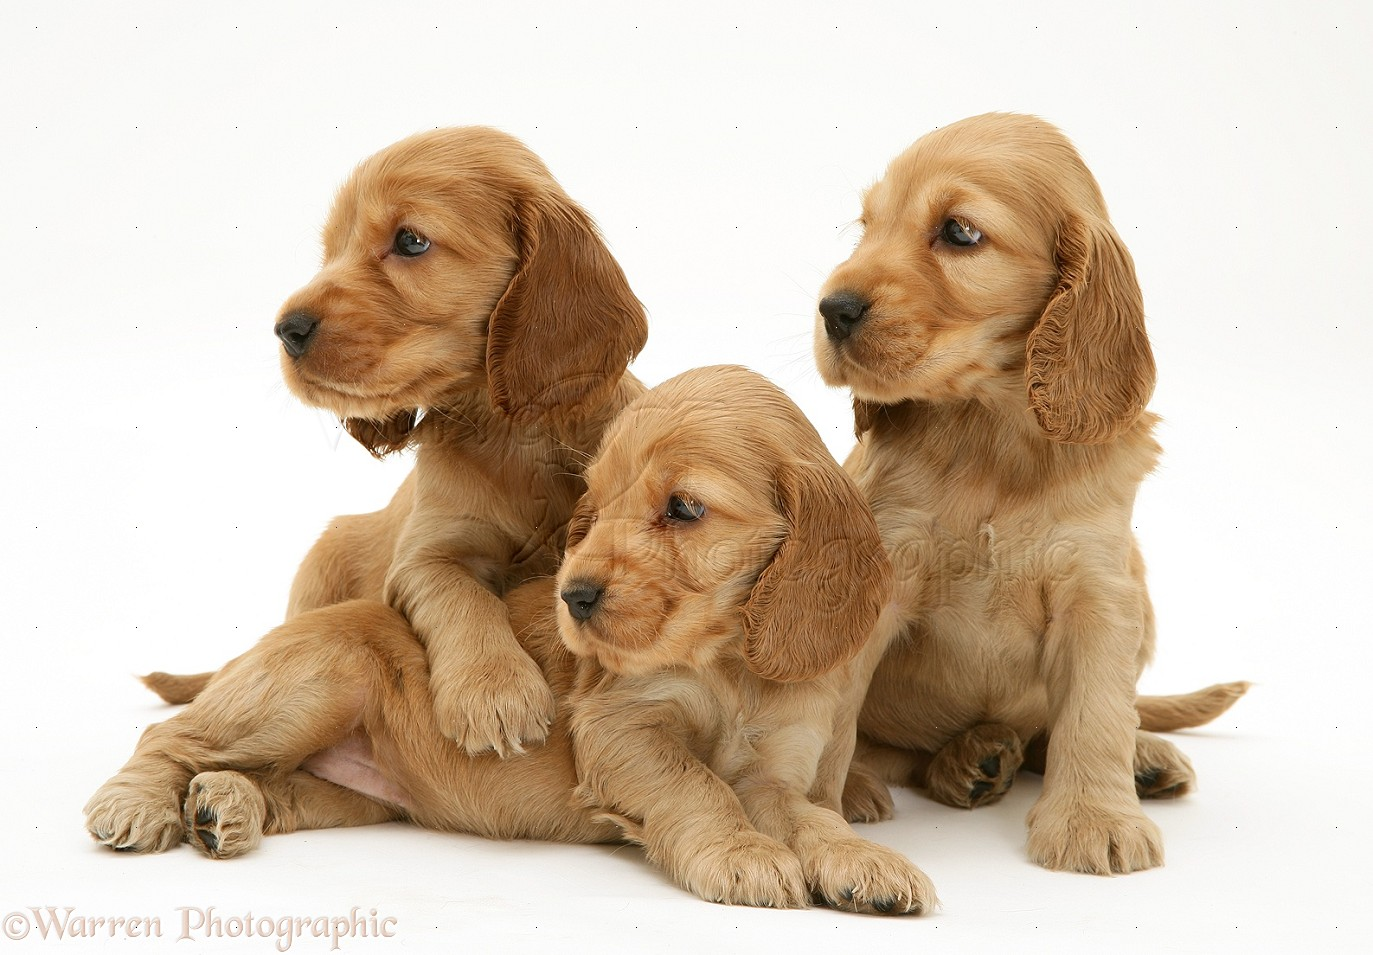 WP18941 Three Golden Cocker Spaniel pups Golden Cocker Puppies